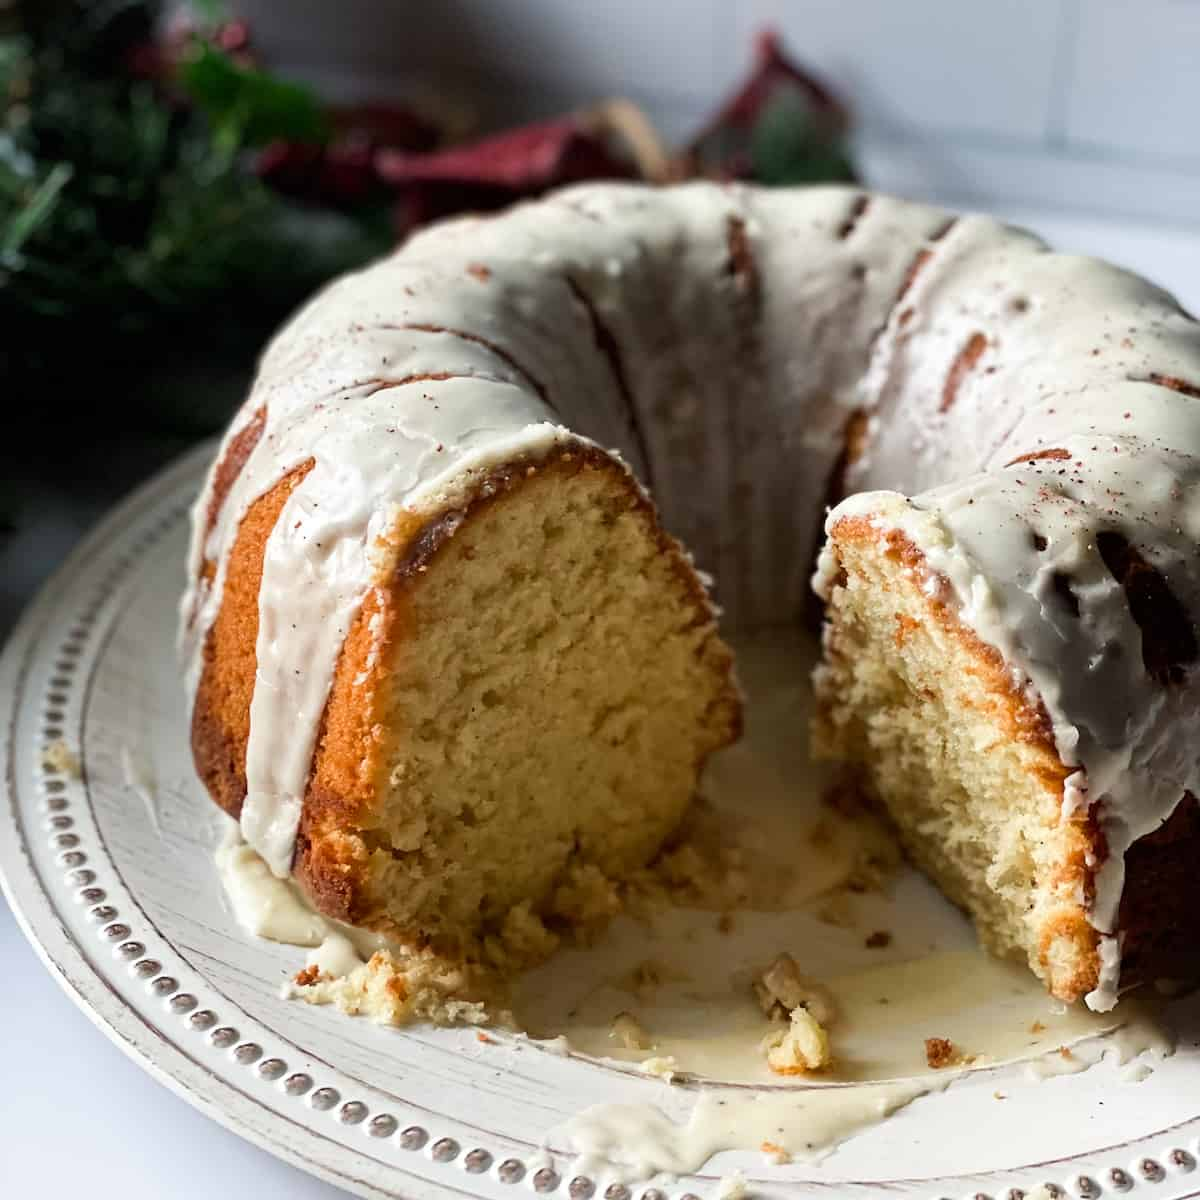 sliced eggnog cake on a white platter surrounded by Christmas decorations